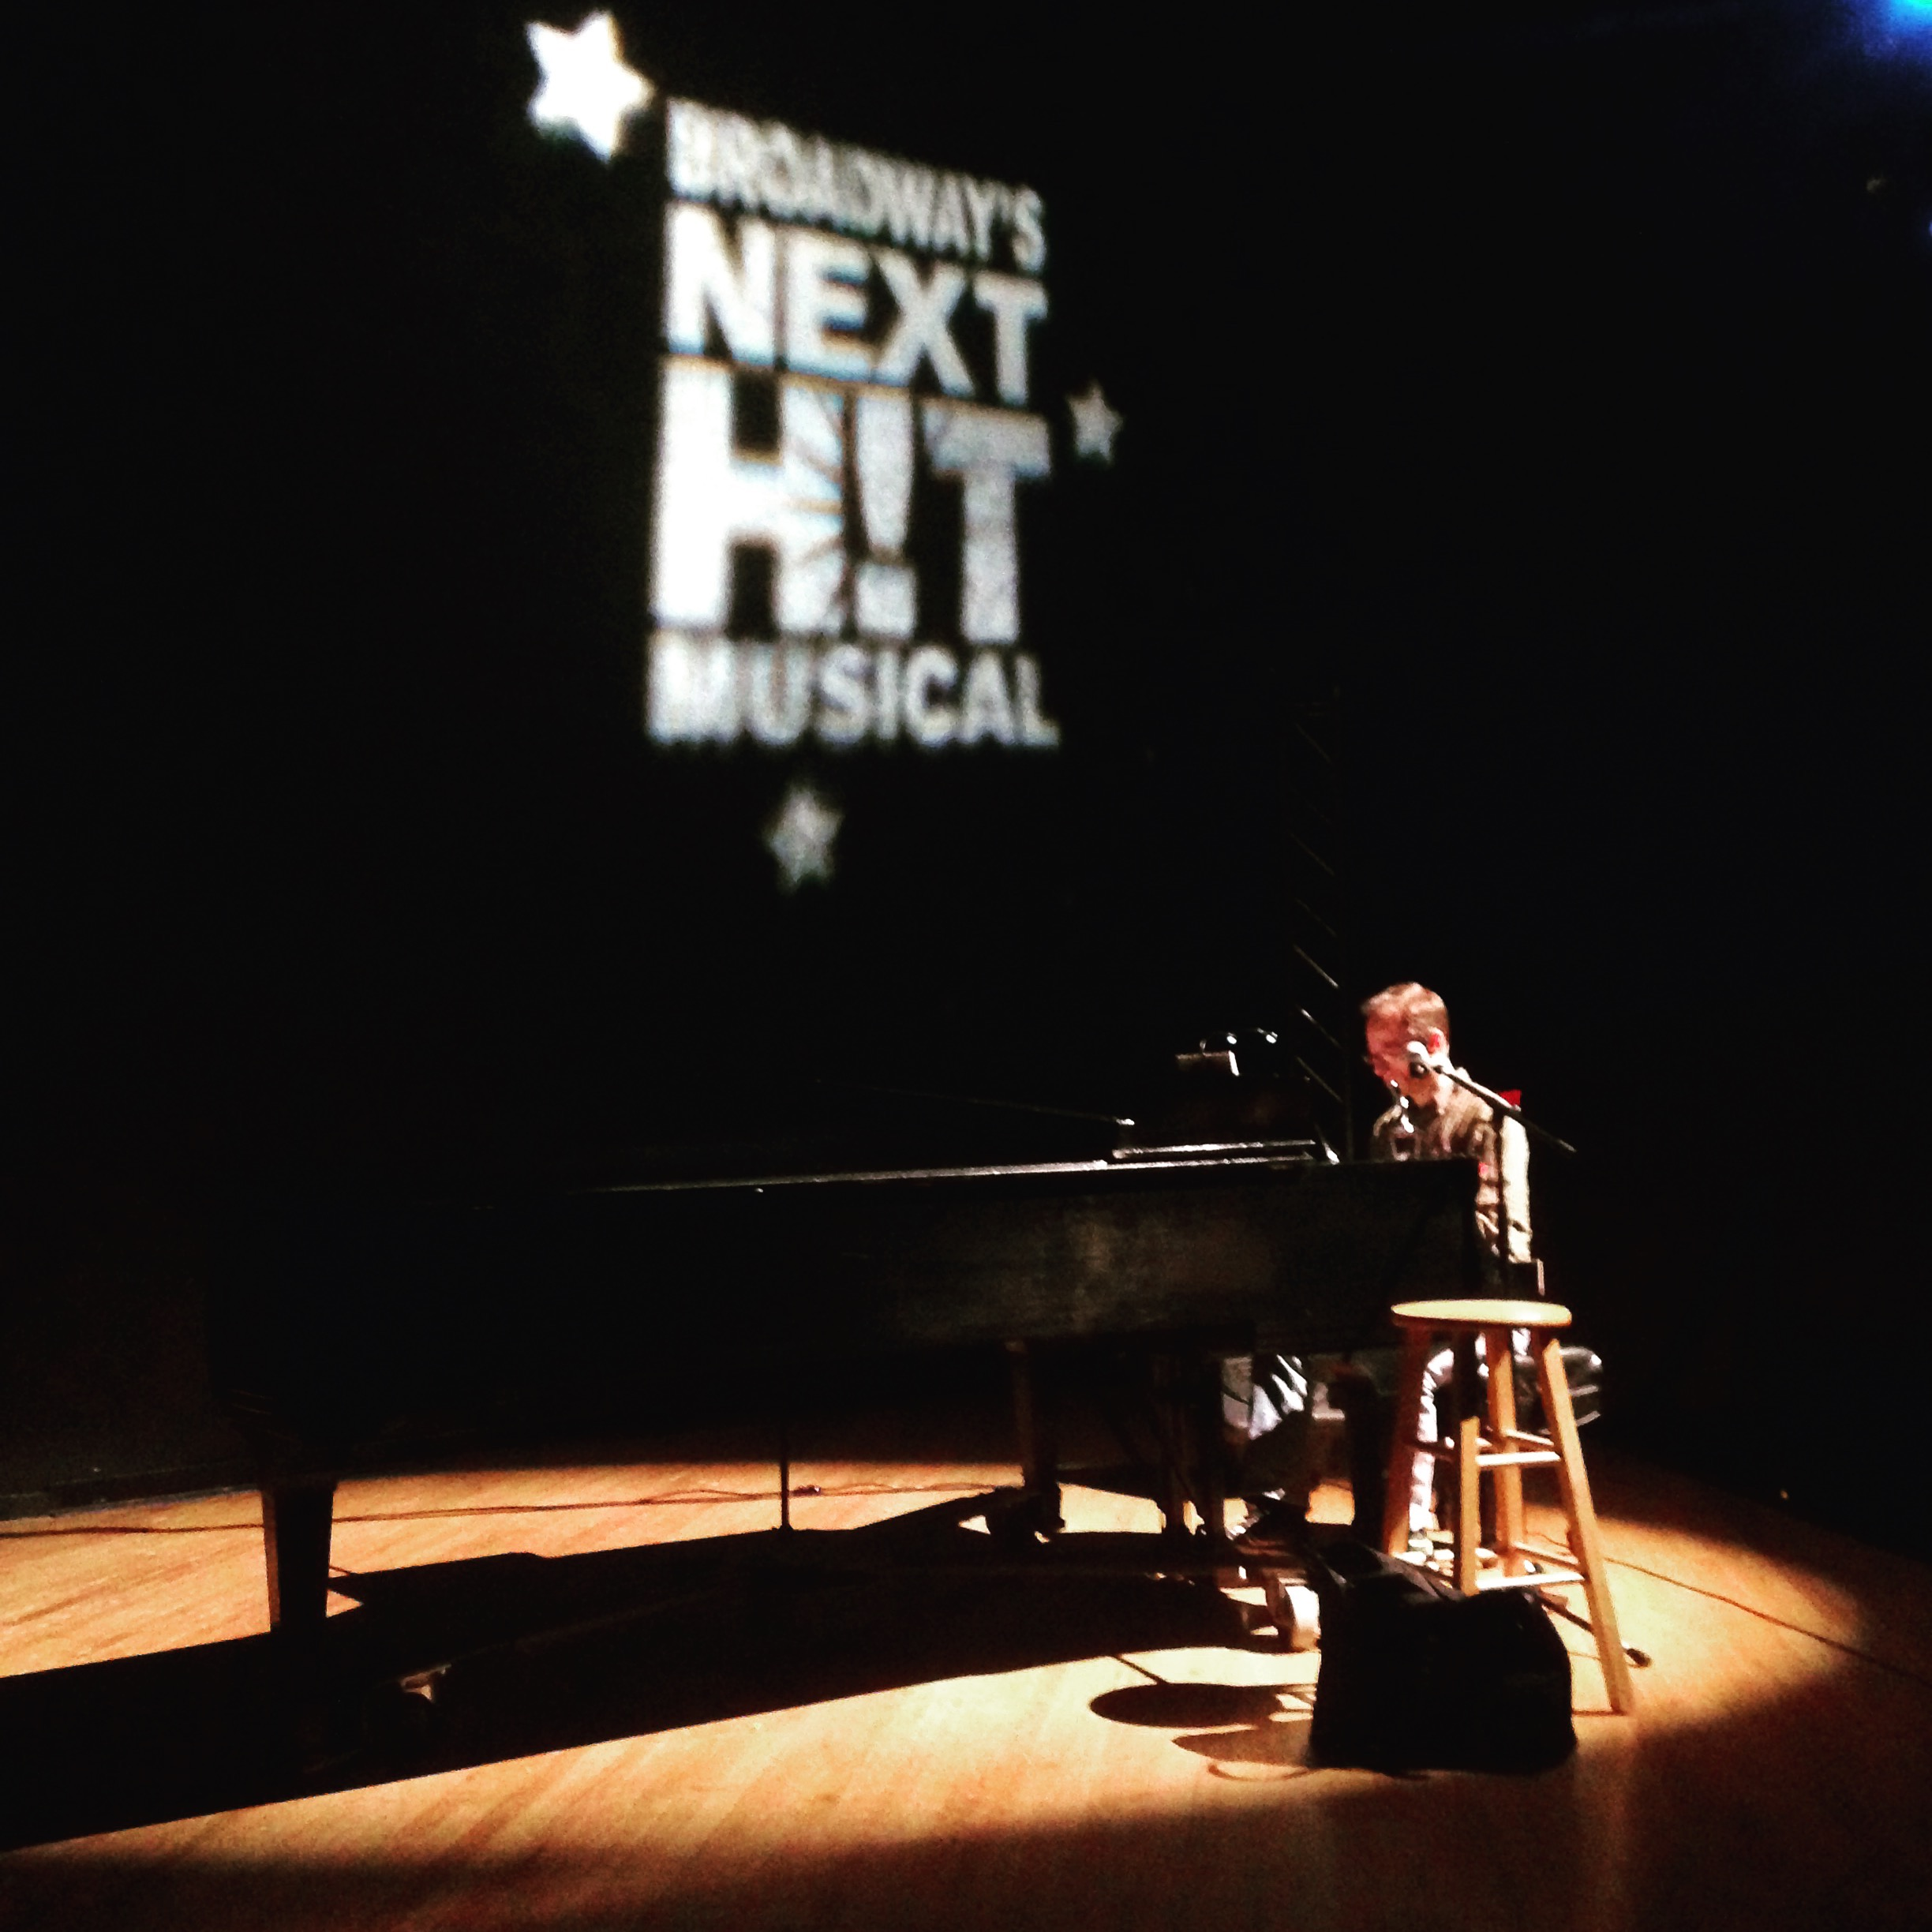 Gary Adler at the piano pre-show